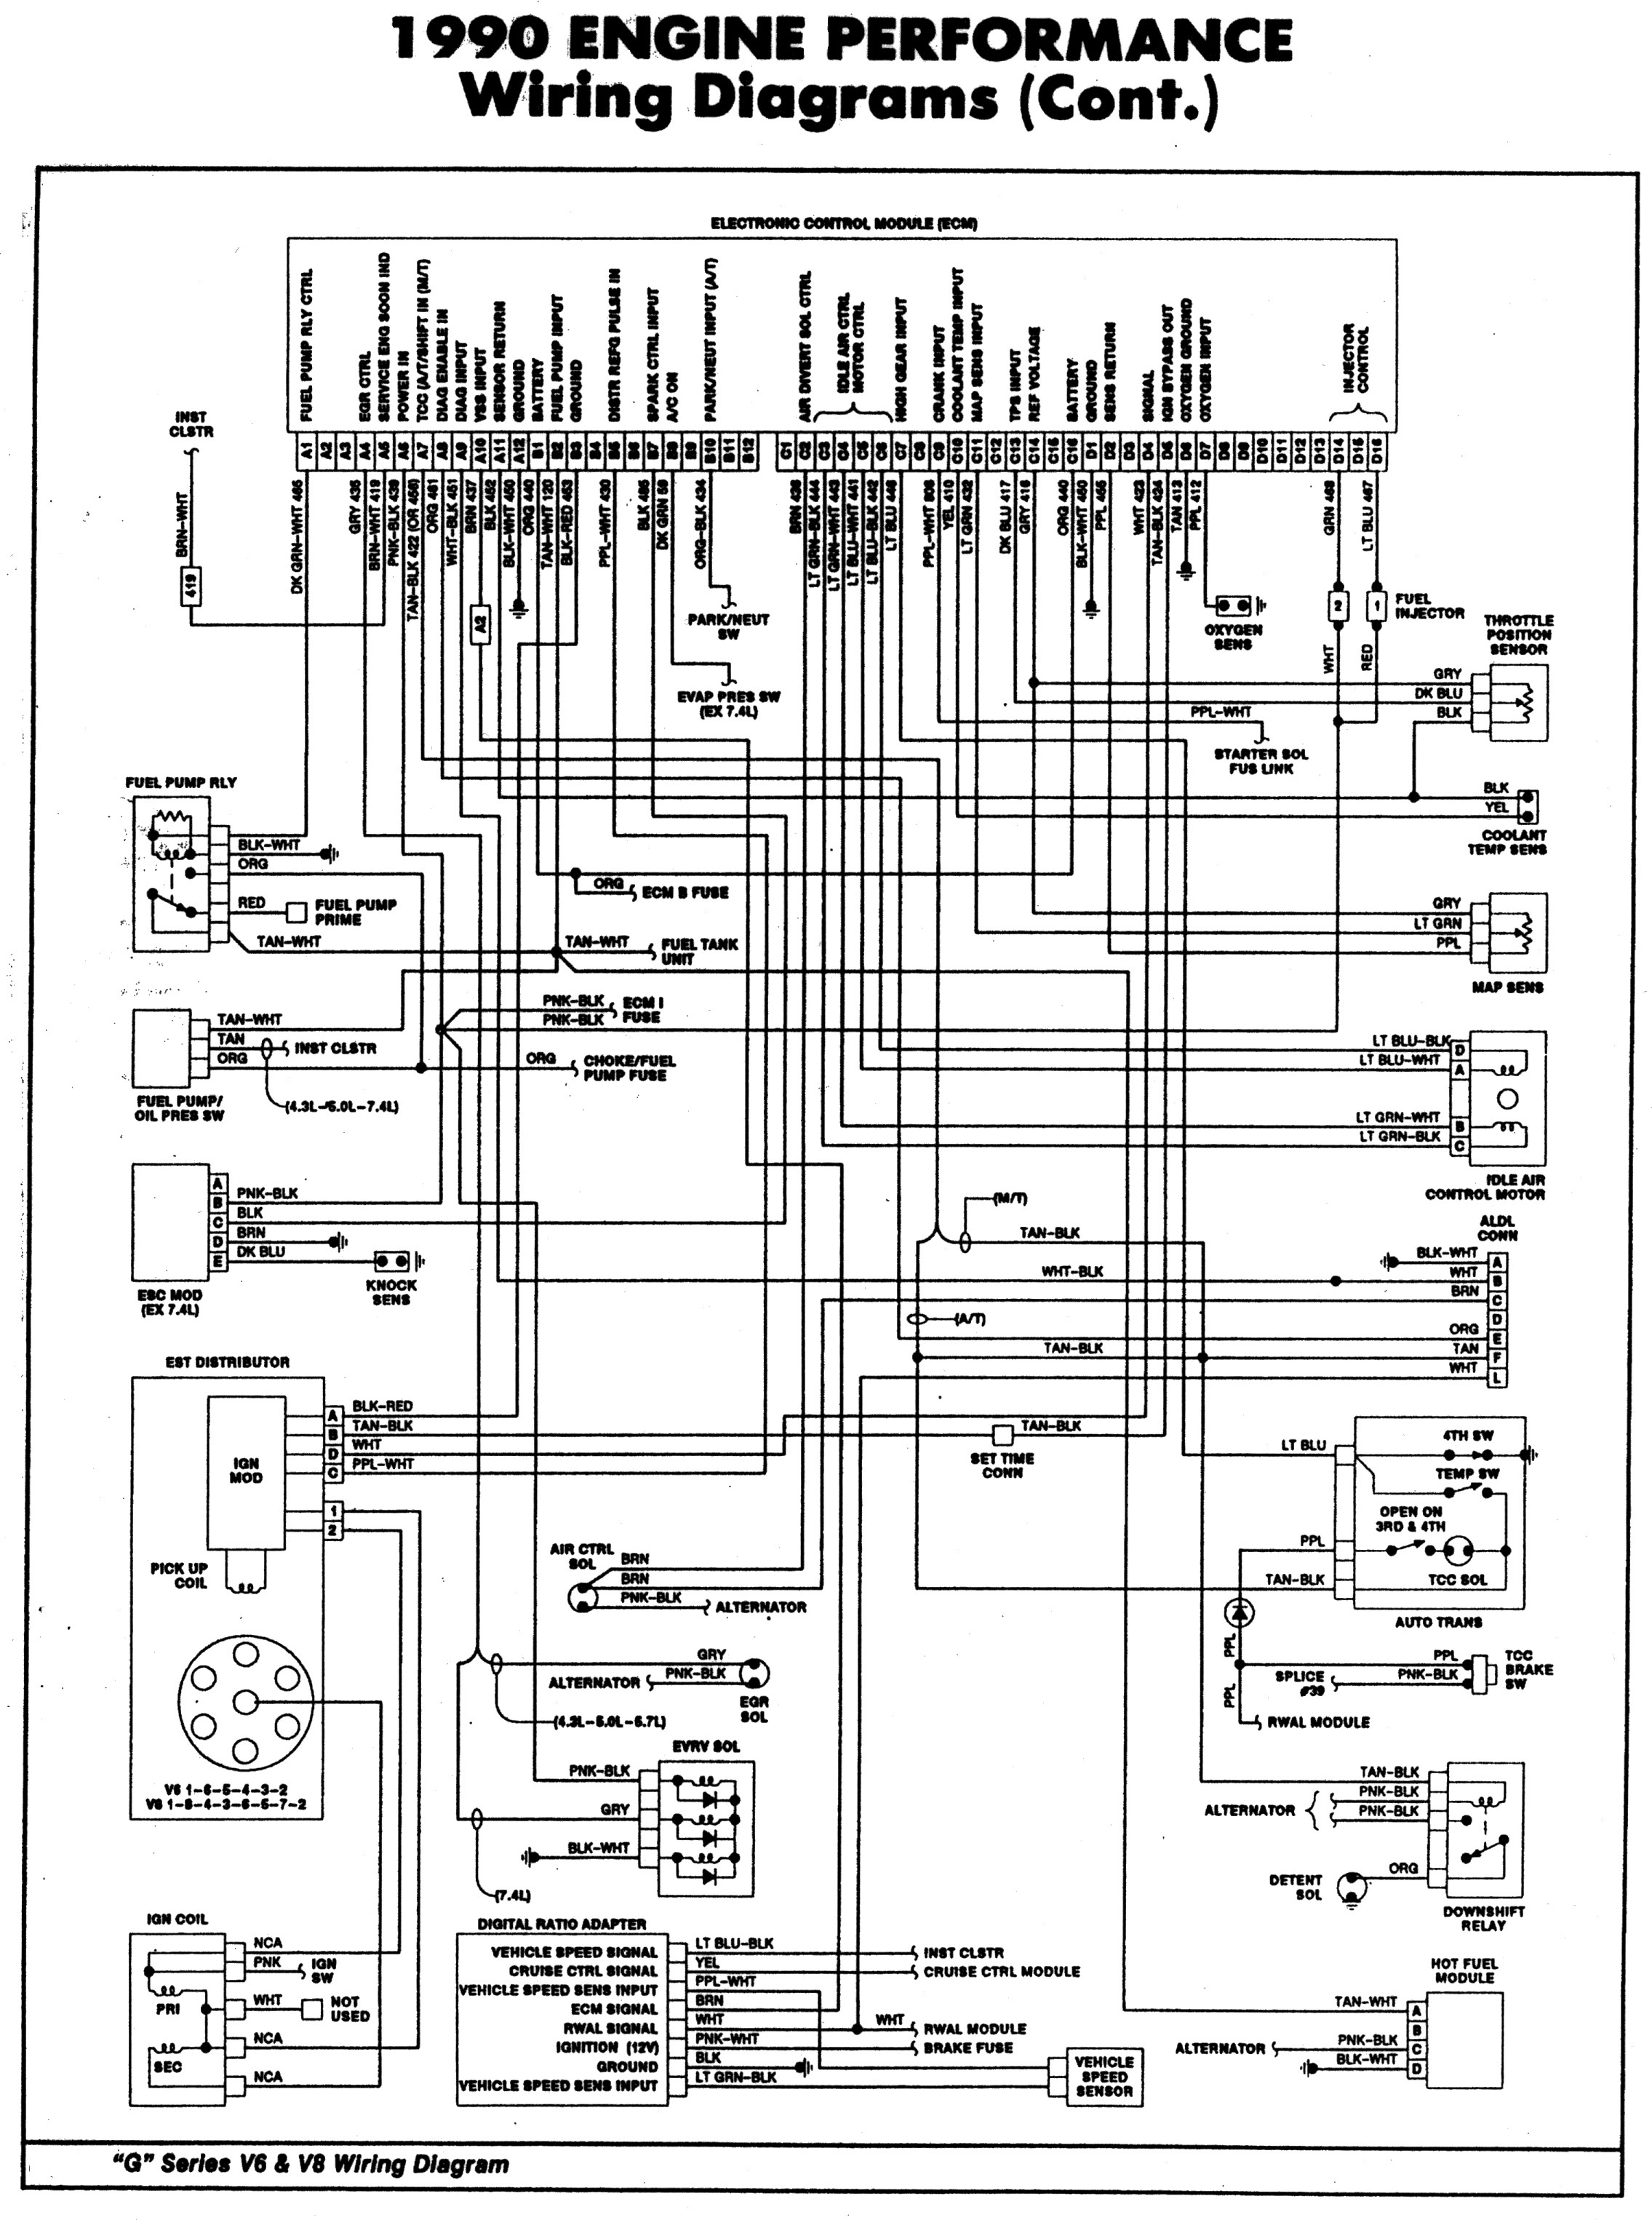 small resolution of 1990 chevy rv wiring diagram wiring diagram home 1990 chevy rv wiring diagram